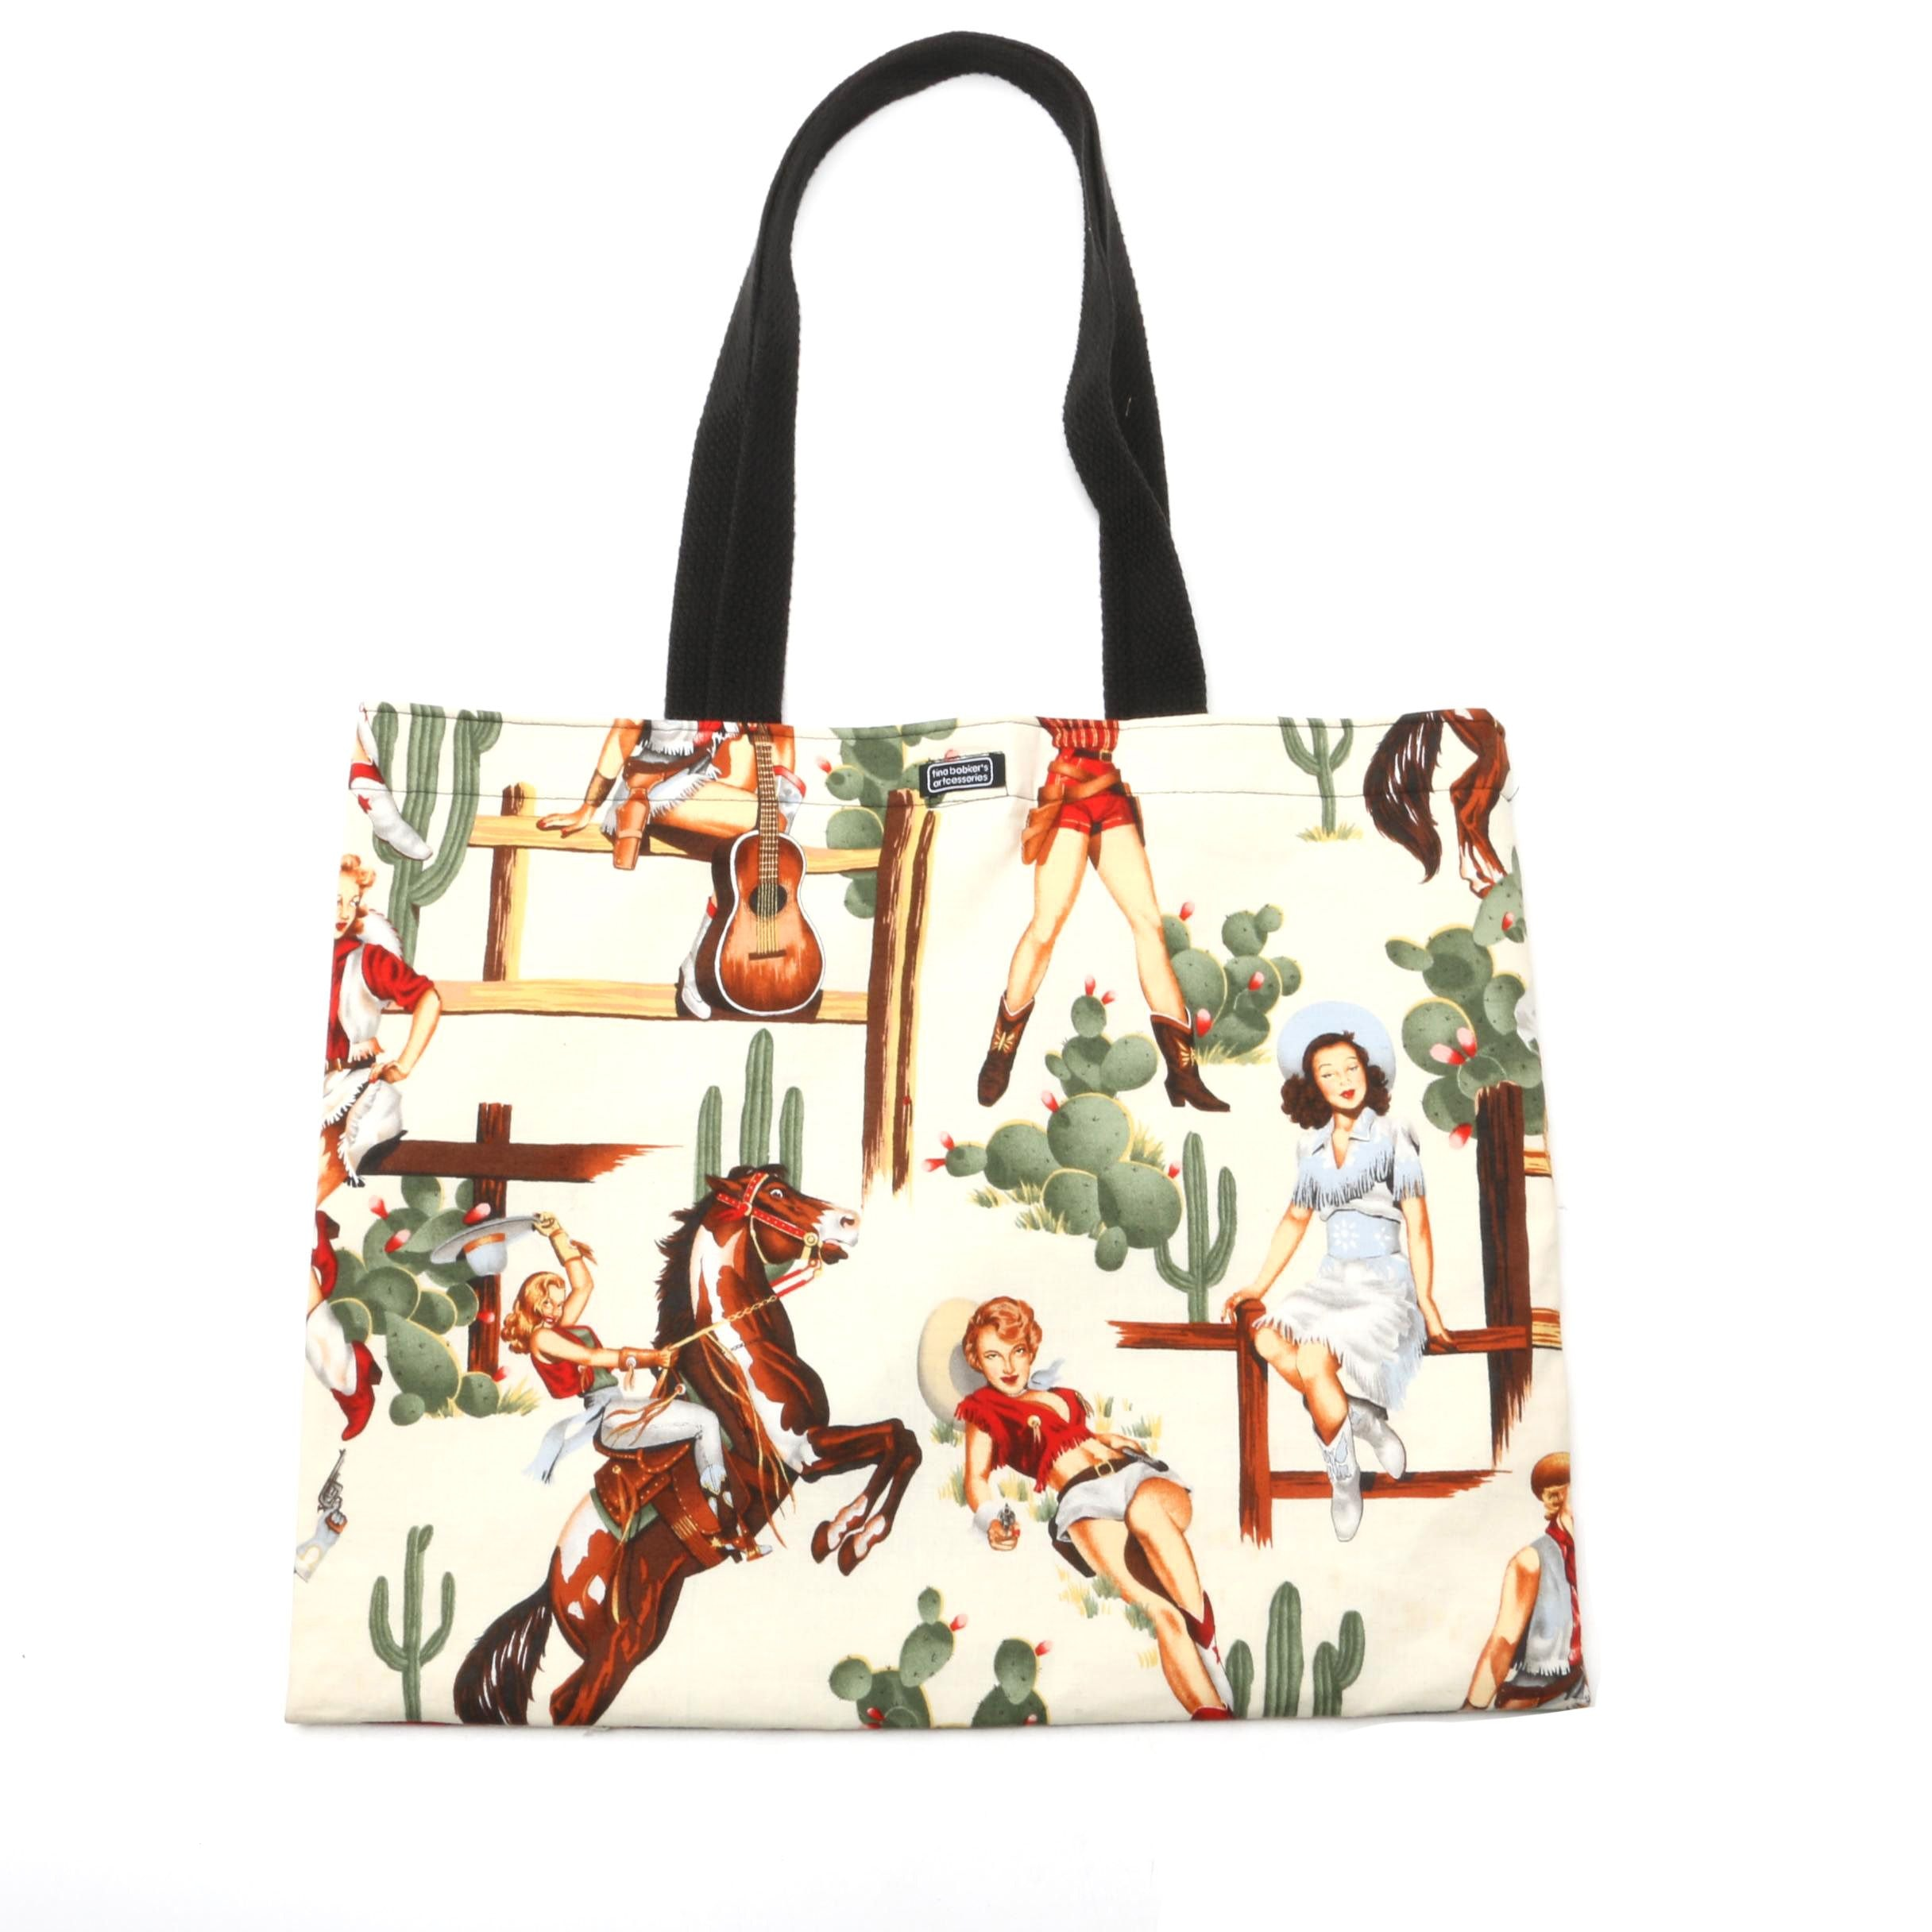 "Cowgirl Tote Bag from Tina Bobker's ""Artcessories"" Collection"